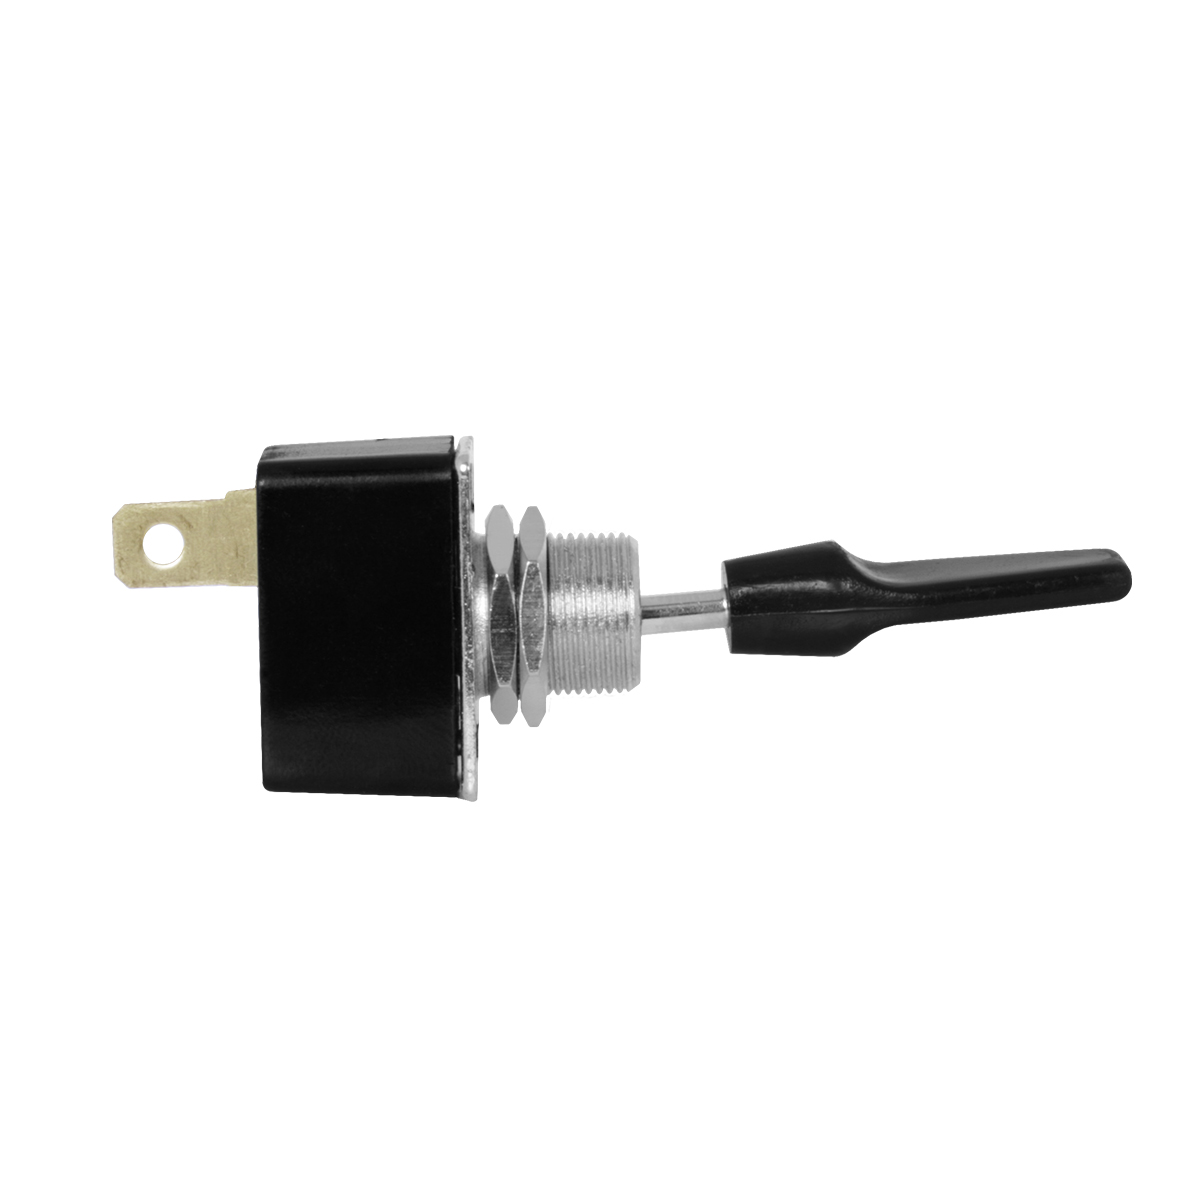 67981 Metal Toggle Switch with Black Plastic Cover